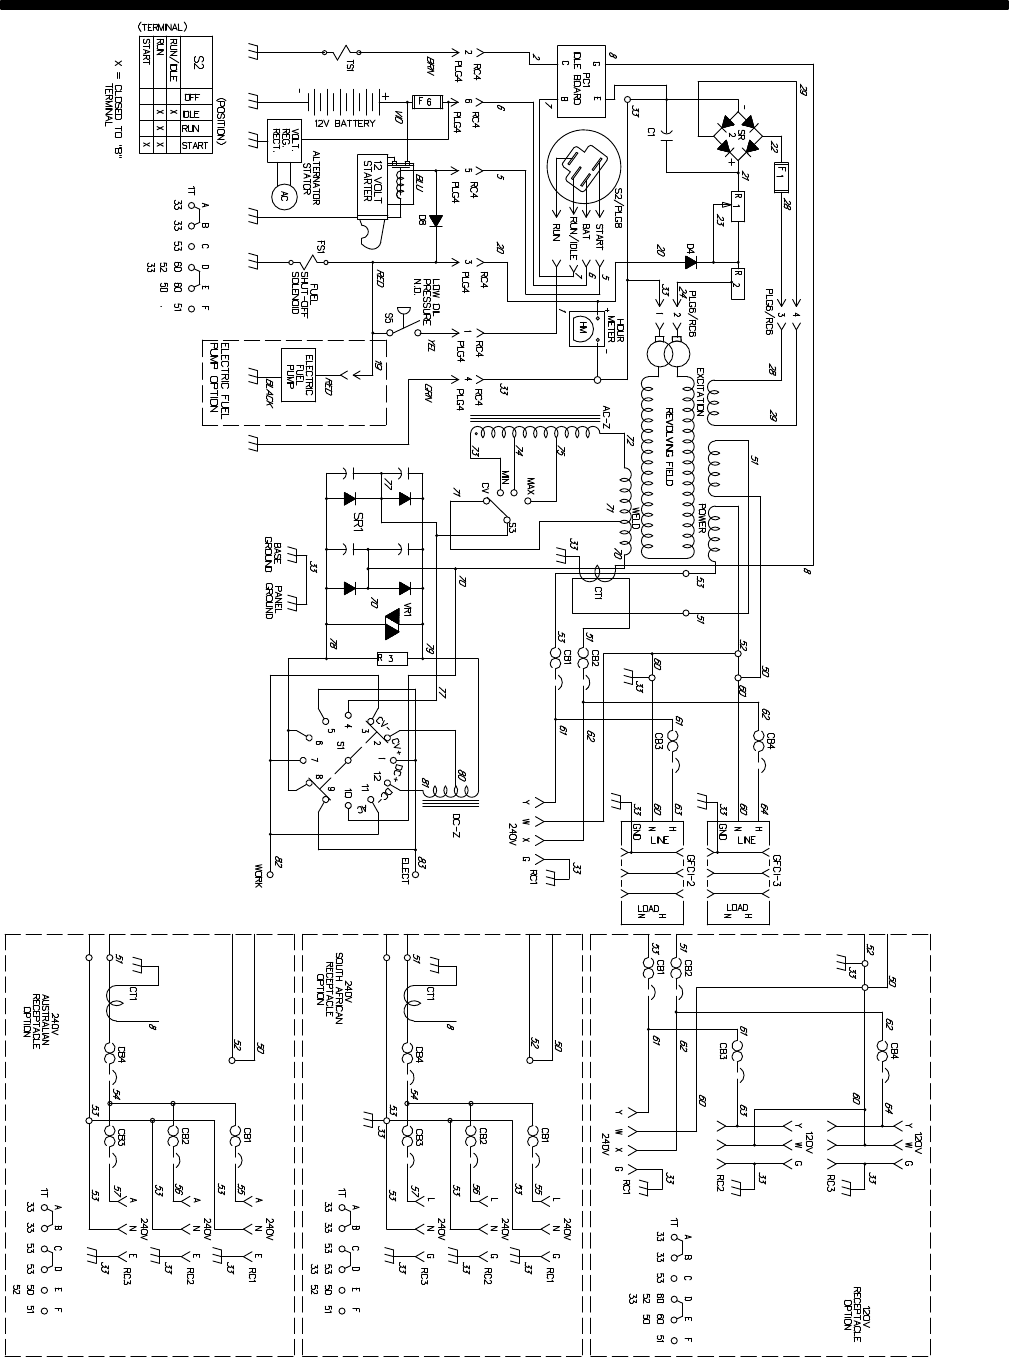 Lincoln Sa 200 Wiring Diagram Lincoln SA200 Wiring Diagram – Lincoln 225 S Wiring Diagram